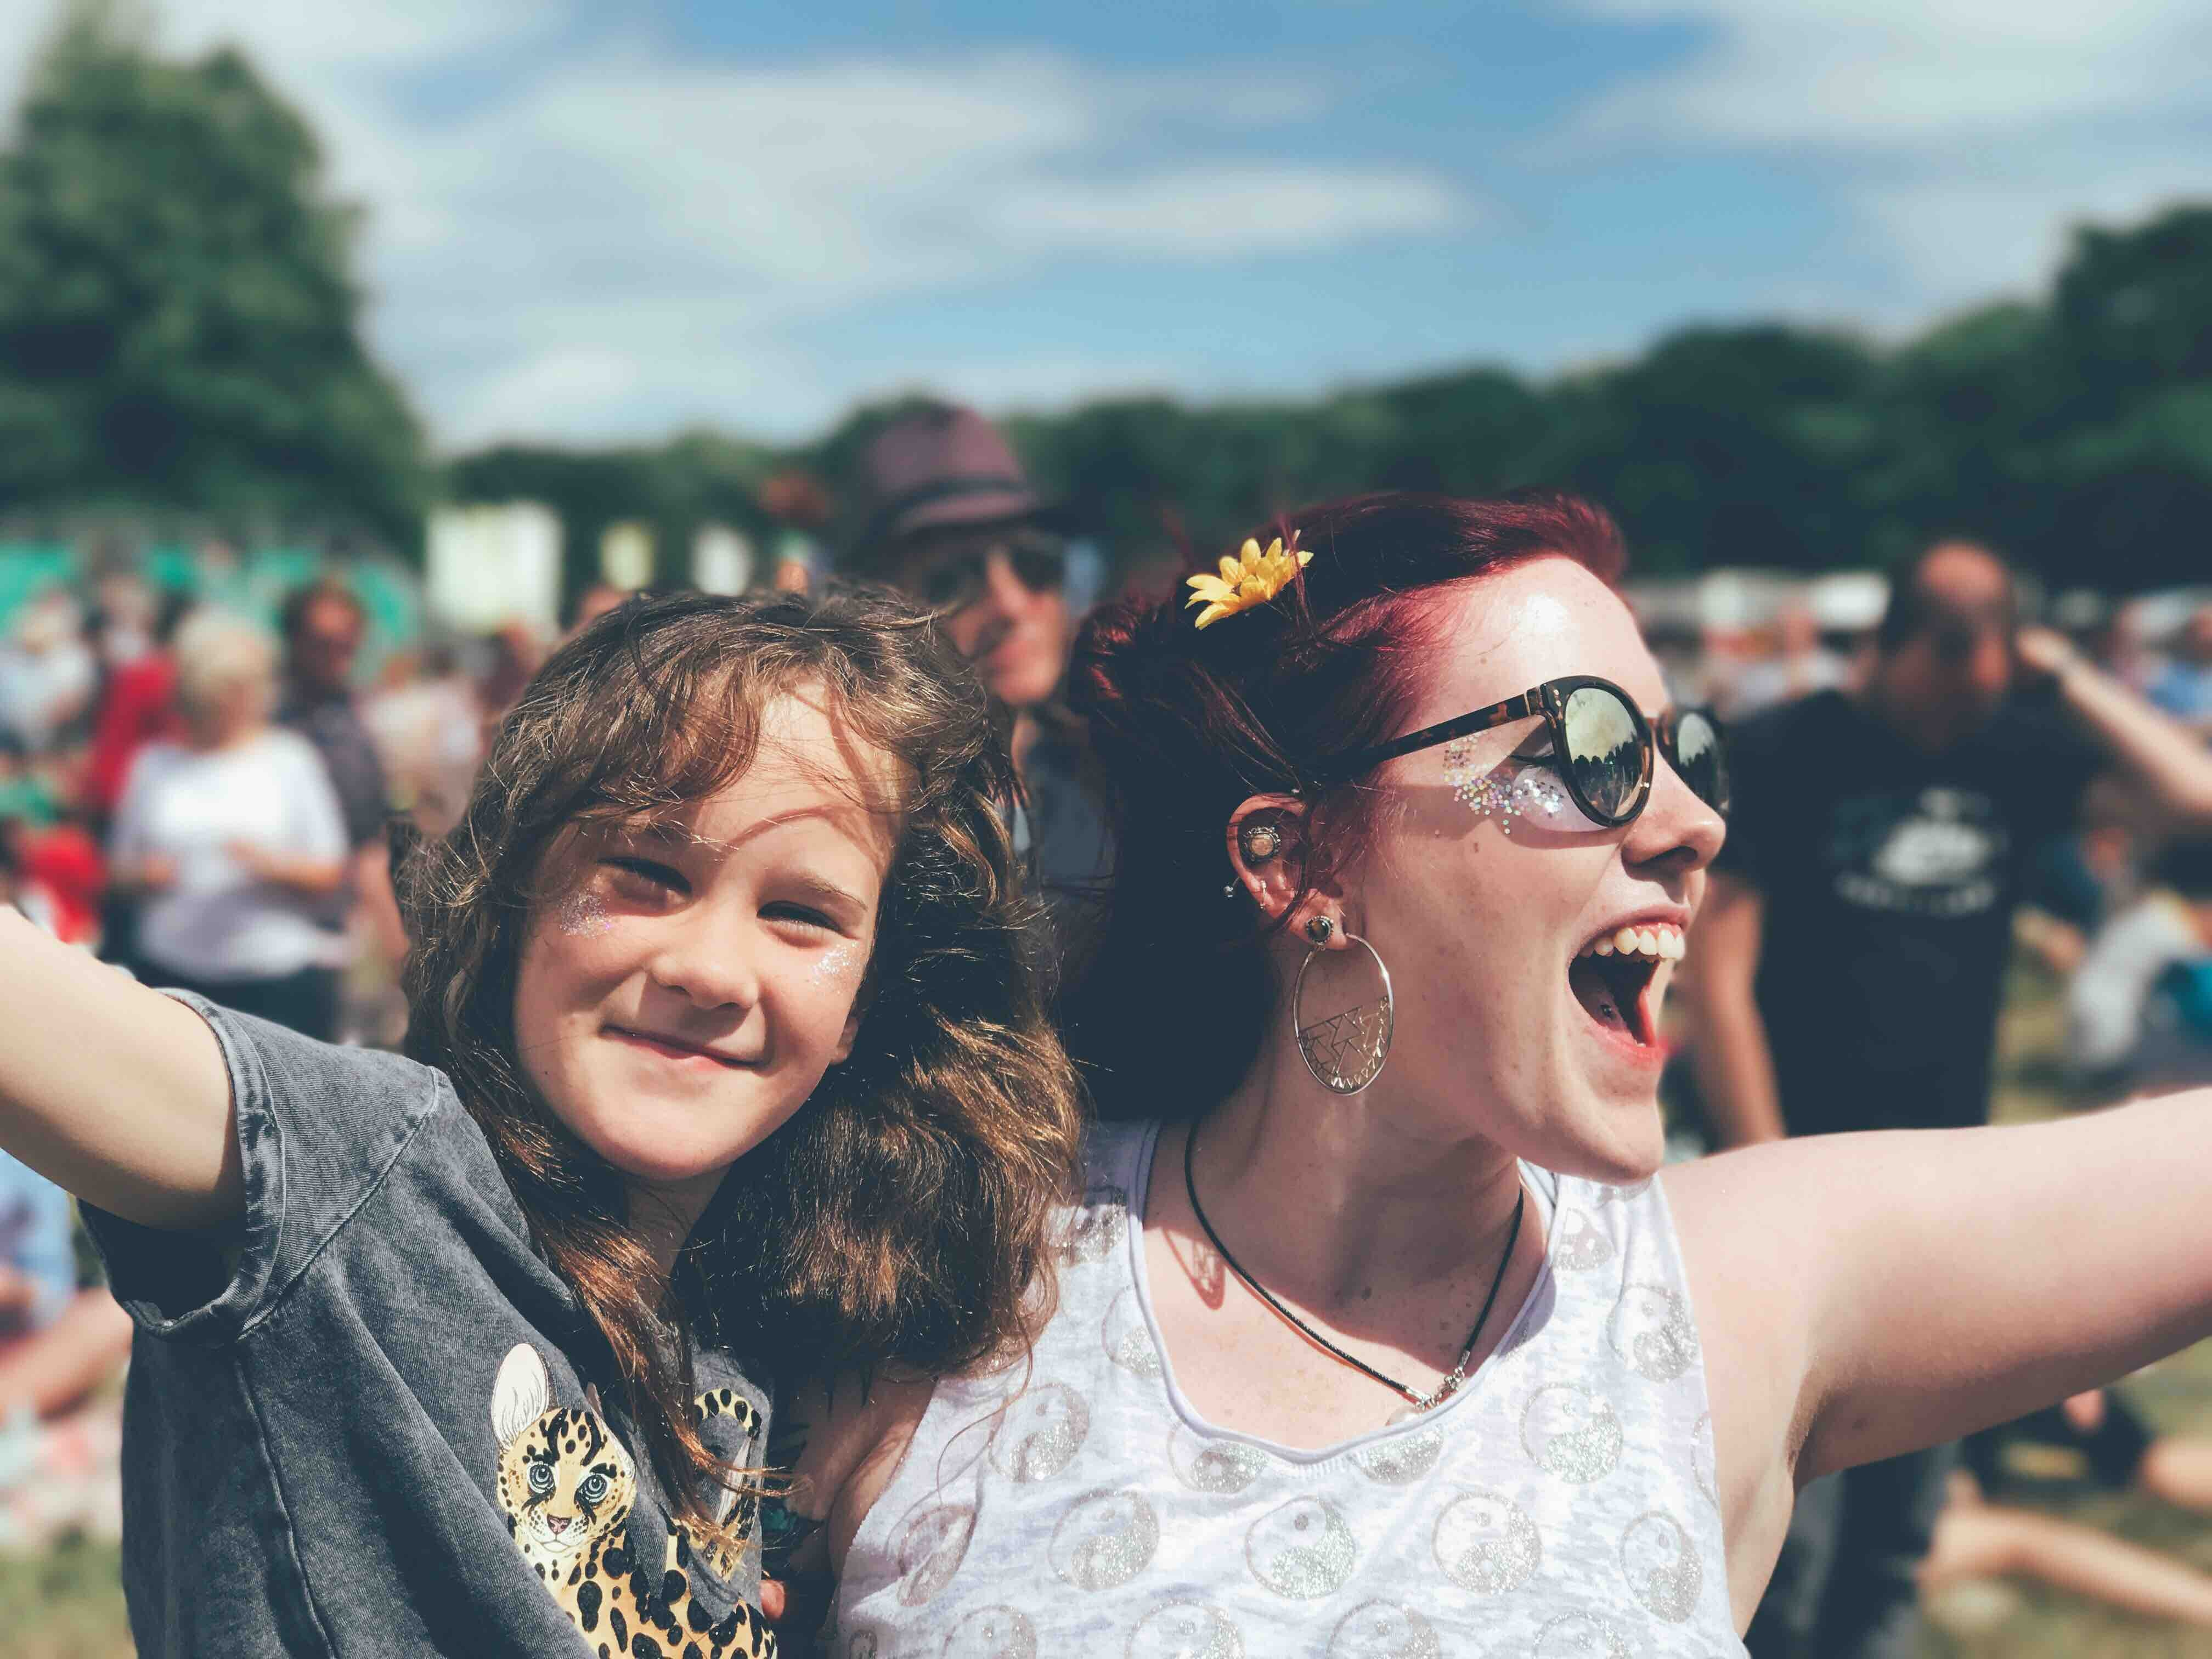 A woman and a young teen smile and wave in a field full of people. The woman has a tellow flower in her hair and glitter on her face. The child looks confident and content